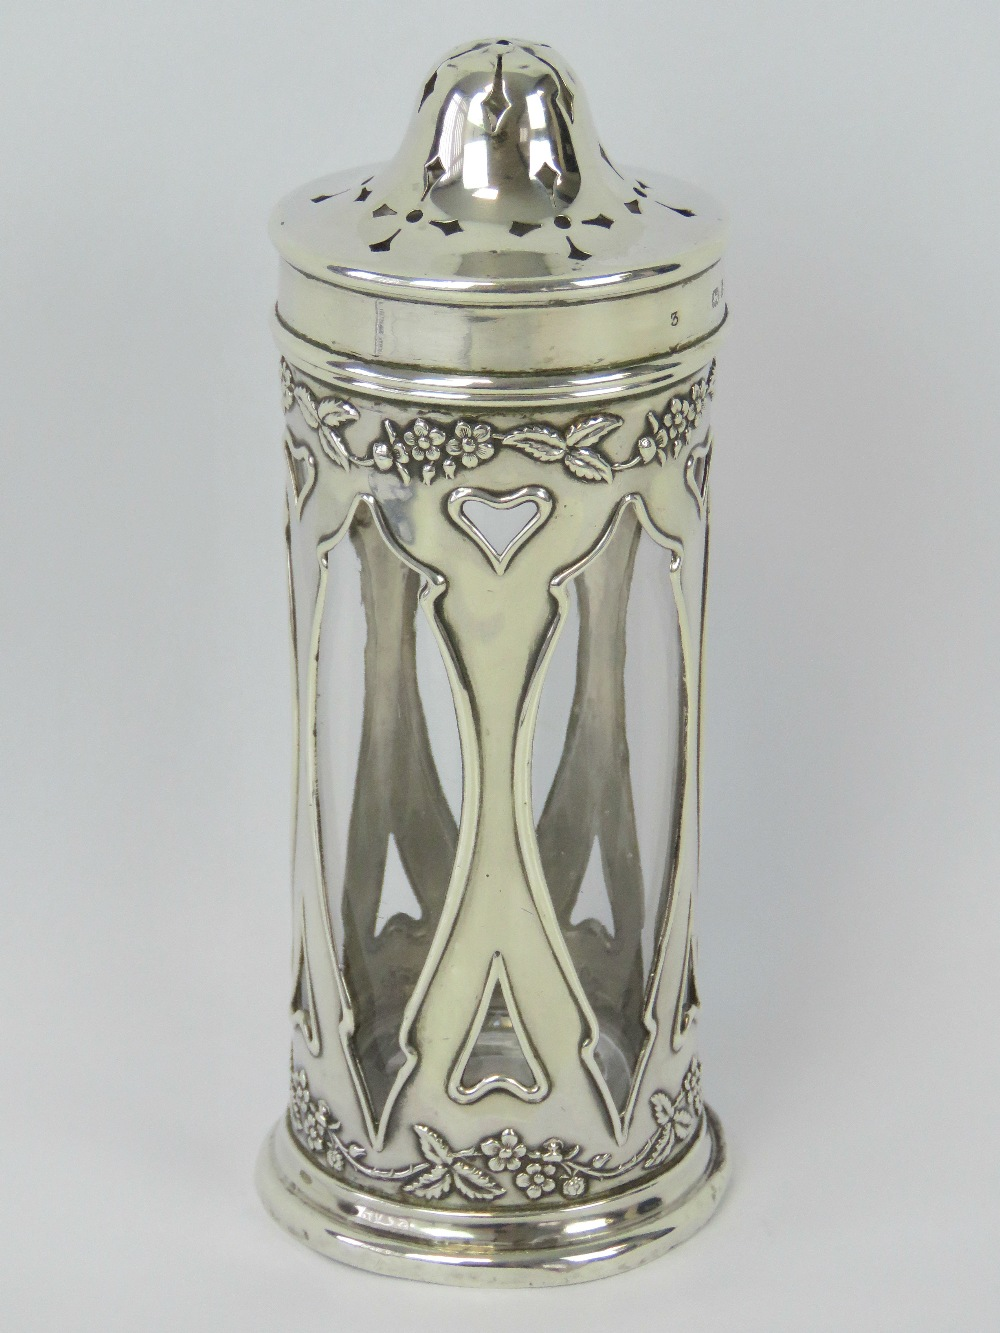 Lot 8 - A delightful Art Nouveau HM silver sugar caster complete with original clear glass liner,